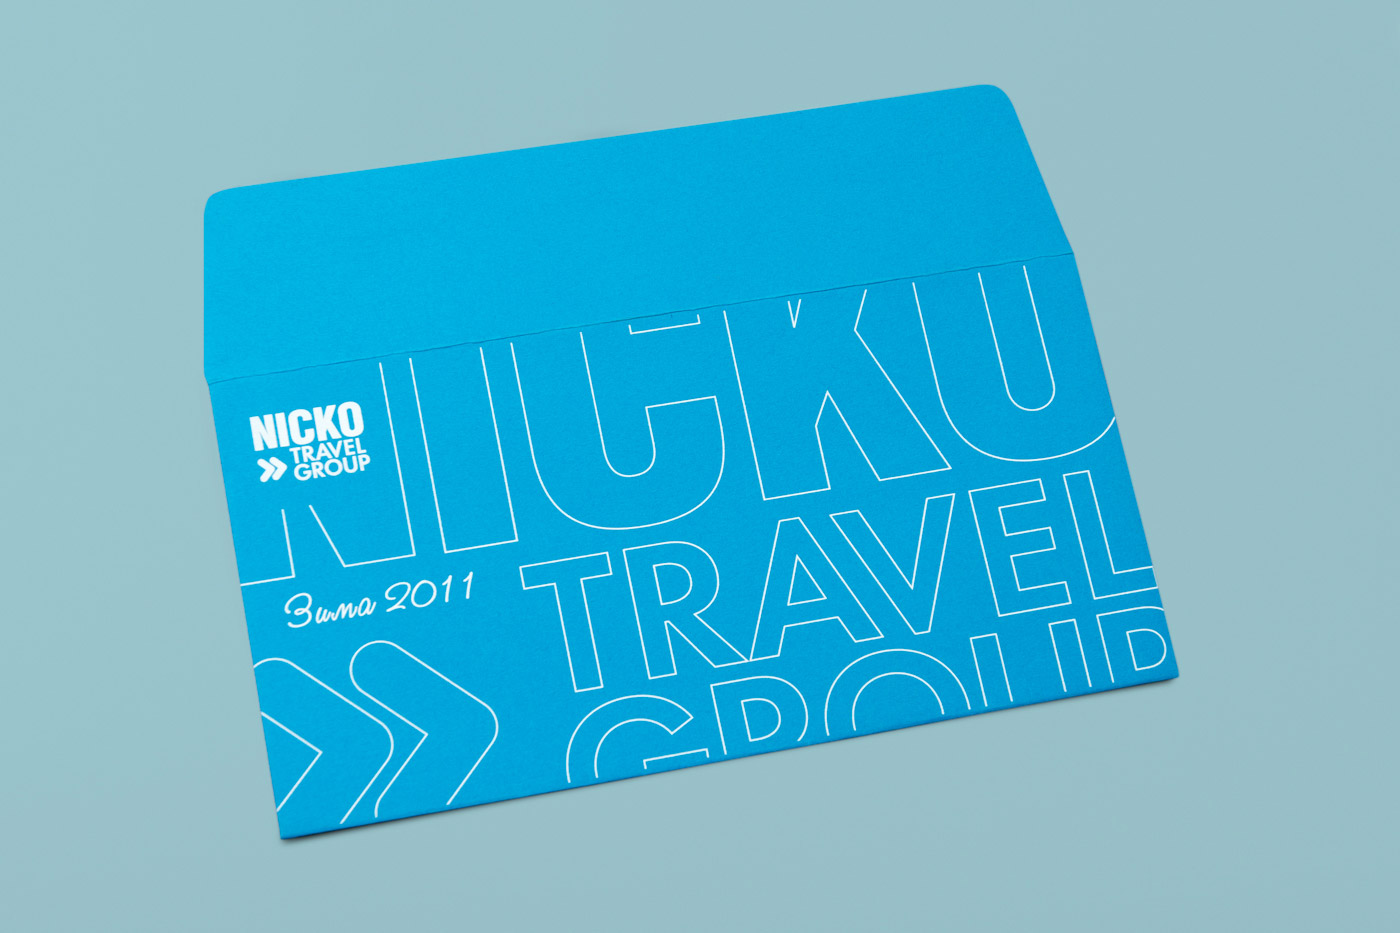 Конверт для nicko travel group